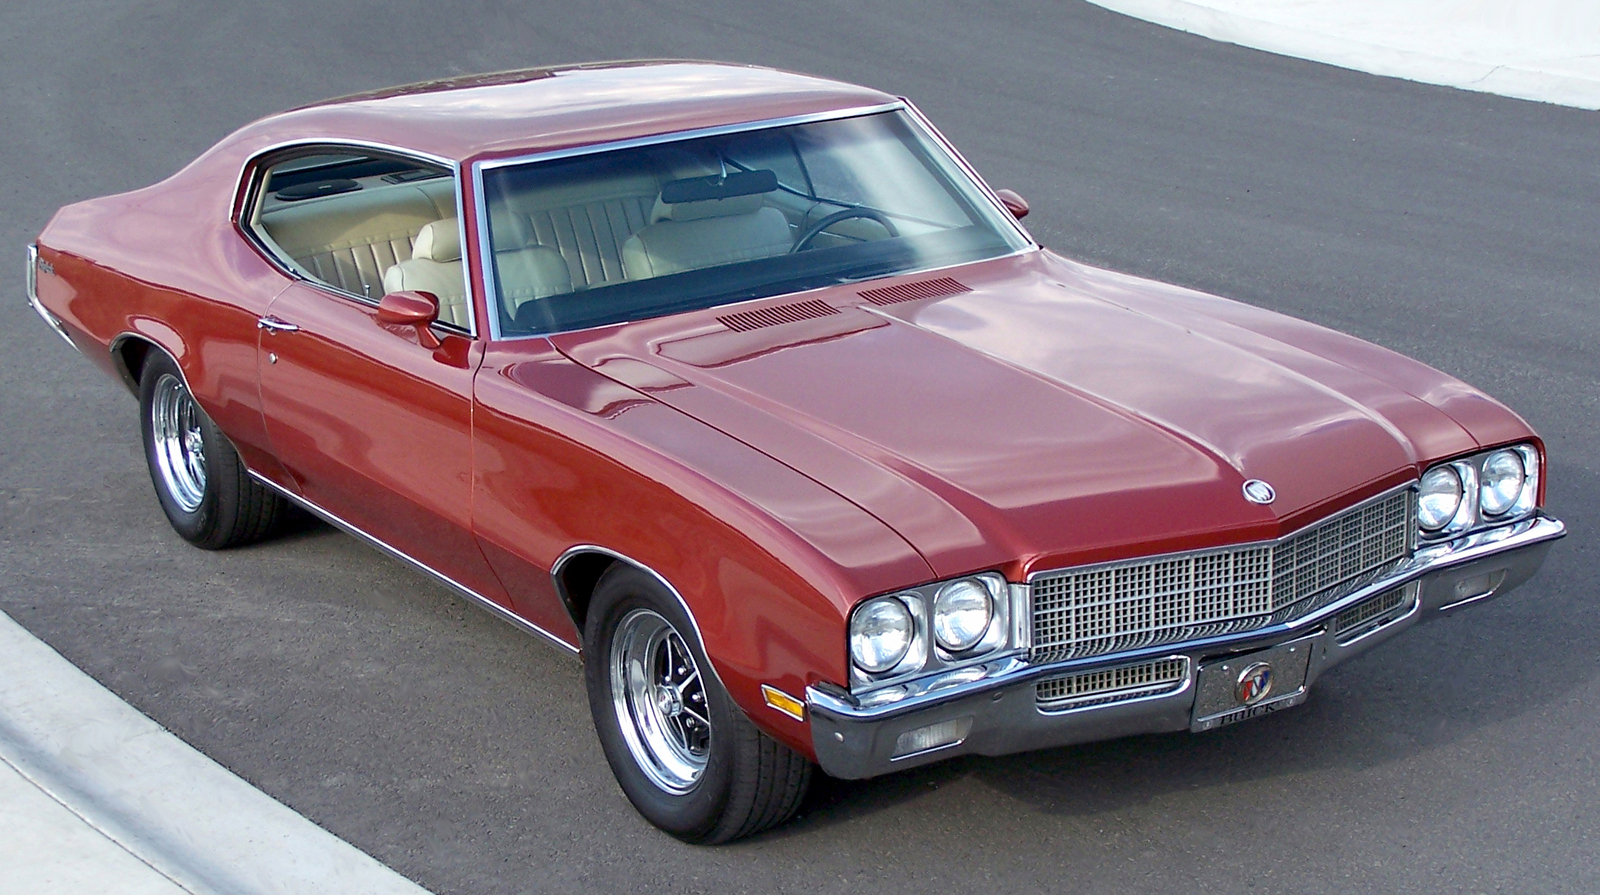 Primary image for 1972 Buick Skylark Front | 24 X 36 inch poster